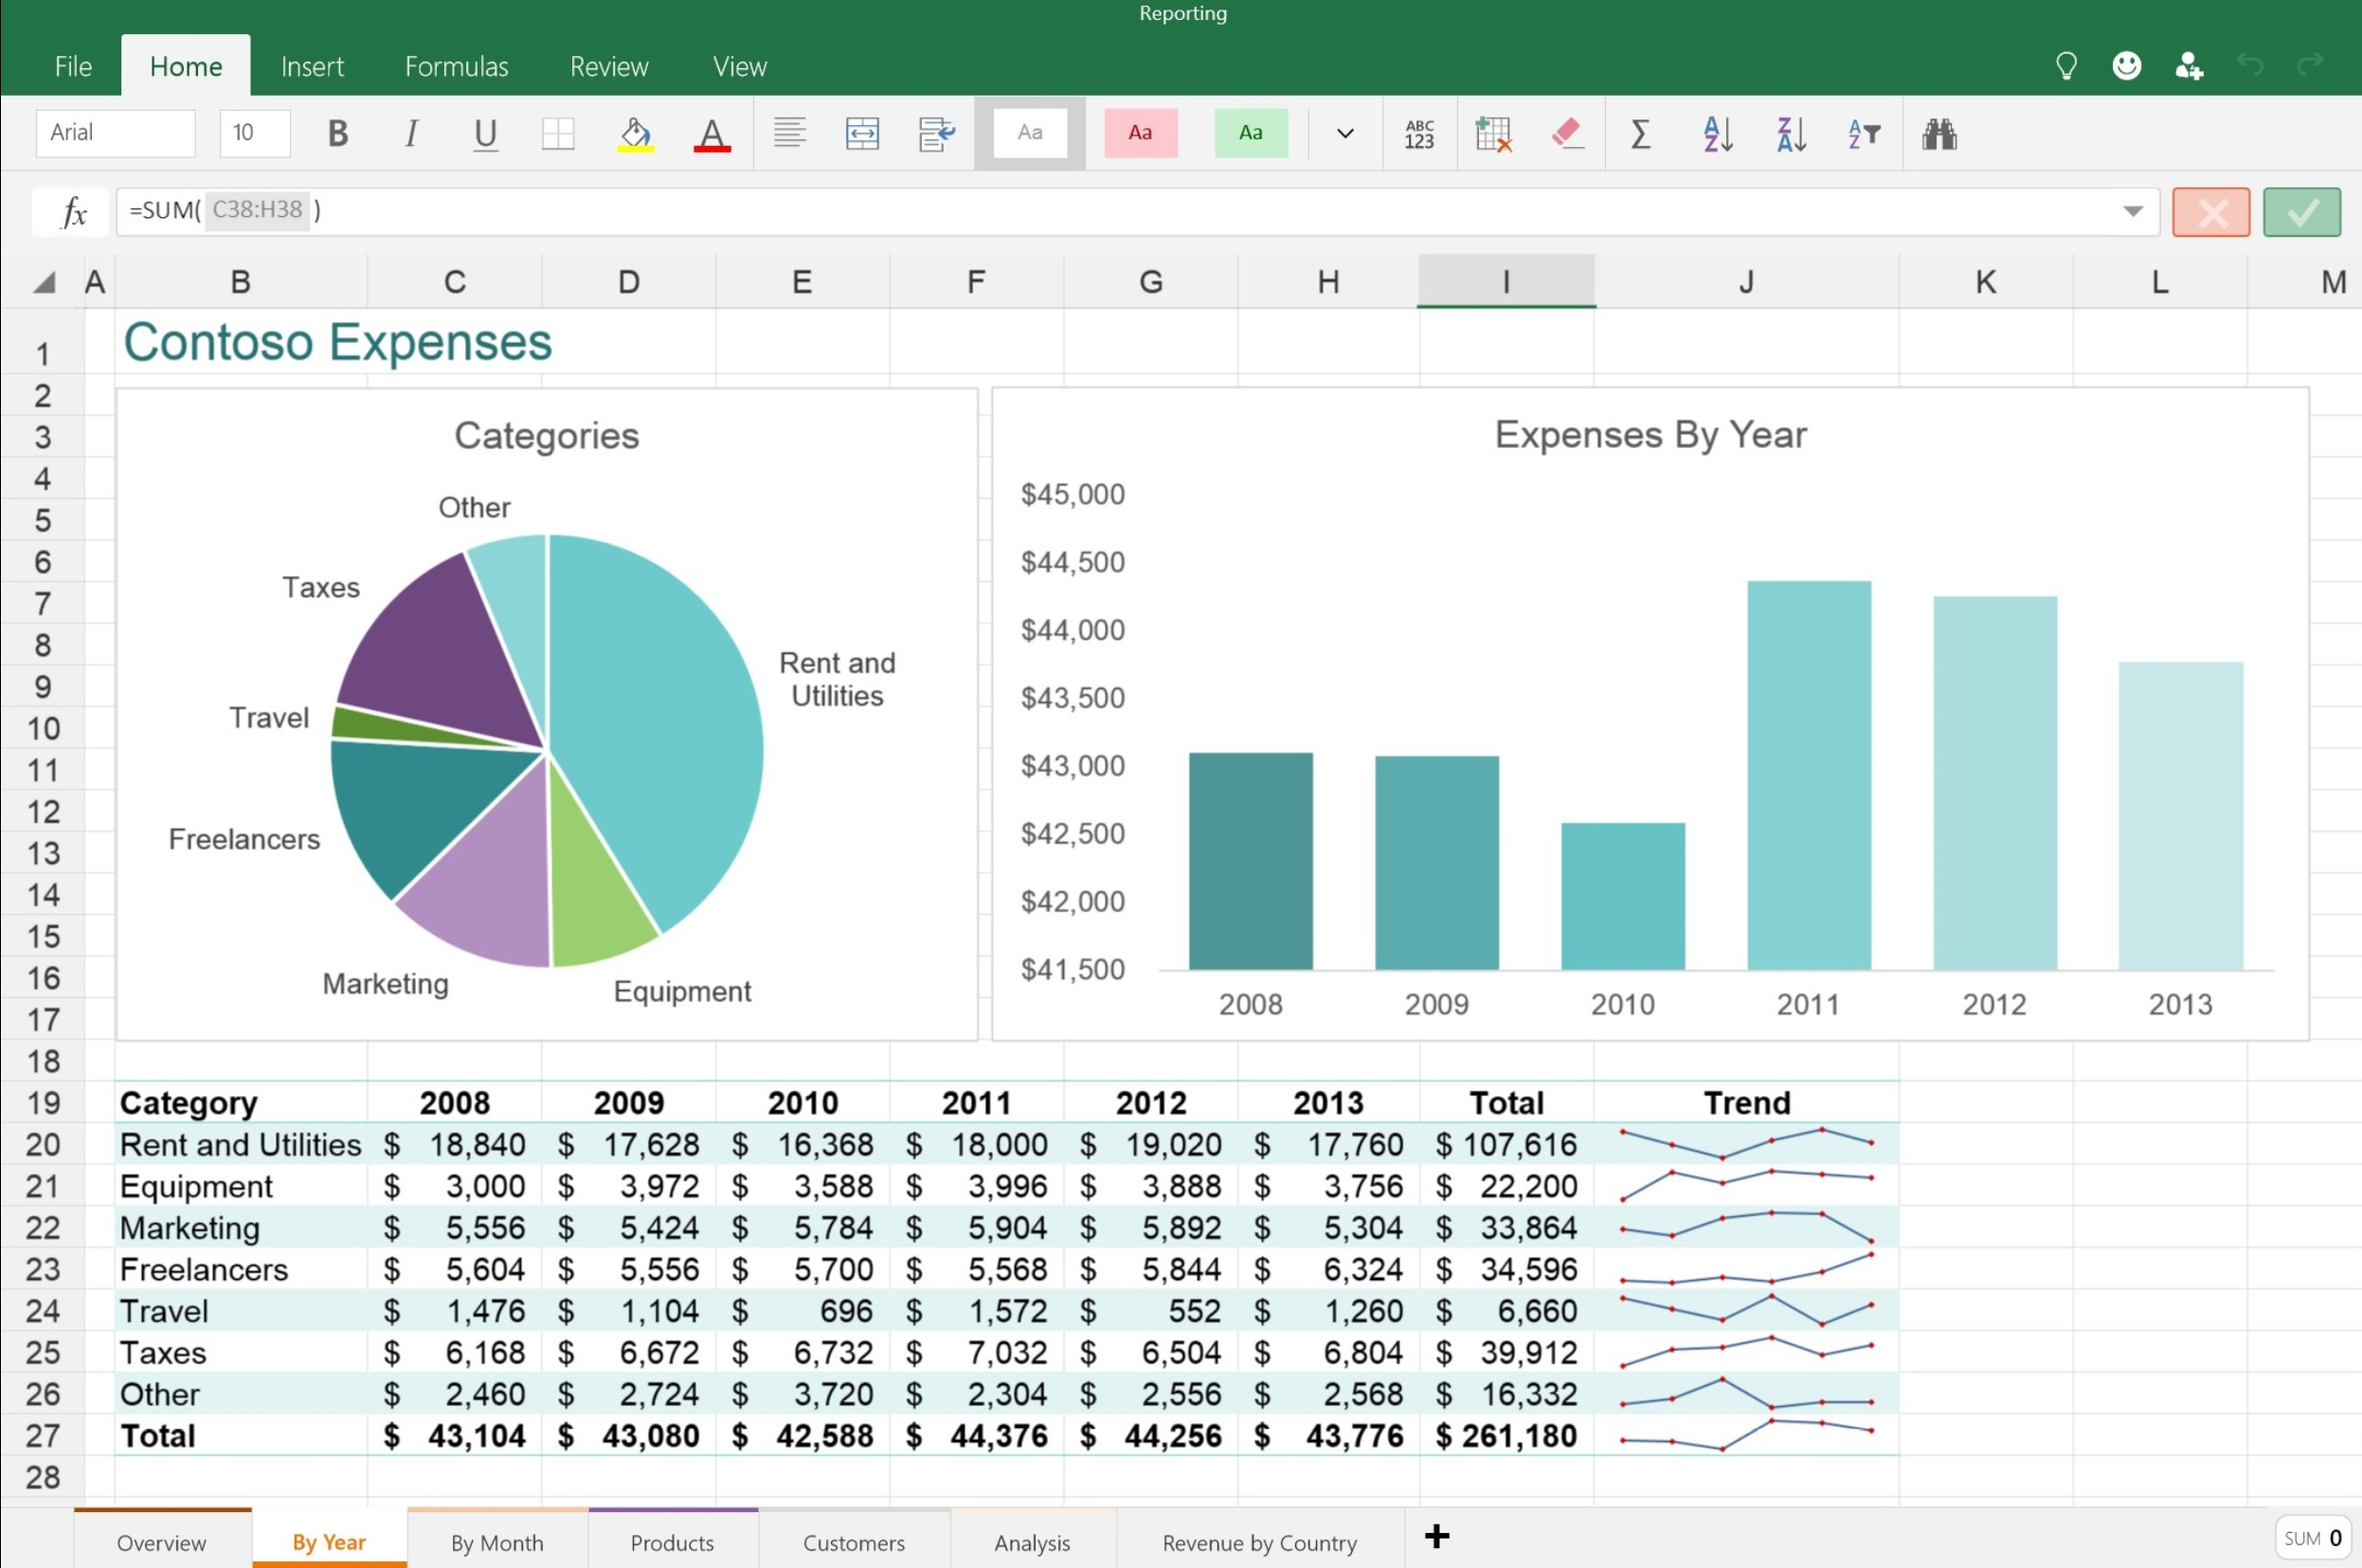 Ediblewildsus  Marvelous Features Available In The New Word Excel And Powerpoint Apps For  With Goodlooking Excel Touch App  With Easy On The Eye Vba Query Excel Also Excel Report Generator In Addition Add Ins Excel  And Percentage Formulas In Excel  As Well As Microsoft Excel  Formulas And Functions Tutorial Additionally How To Create A Gantt Chart In Excel  From Mspowerusercom With Ediblewildsus  Goodlooking Features Available In The New Word Excel And Powerpoint Apps For  With Easy On The Eye Excel Touch App  And Marvelous Vba Query Excel Also Excel Report Generator In Addition Add Ins Excel  From Mspowerusercom